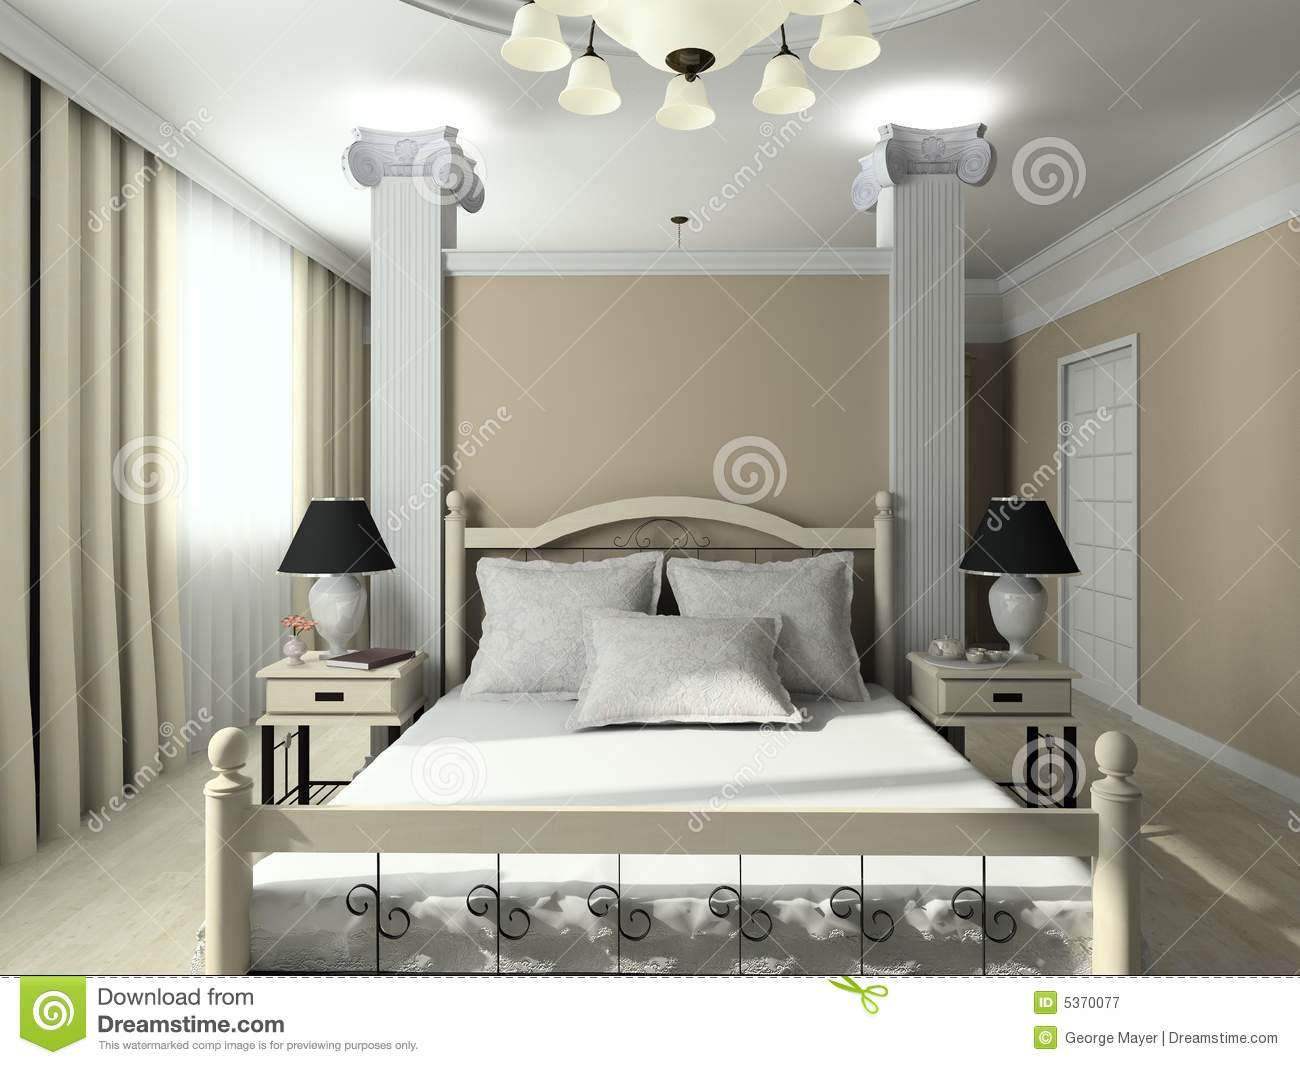 modern bedroom interior 3d render 3d render modern interior of bedroom royalty free stock 923